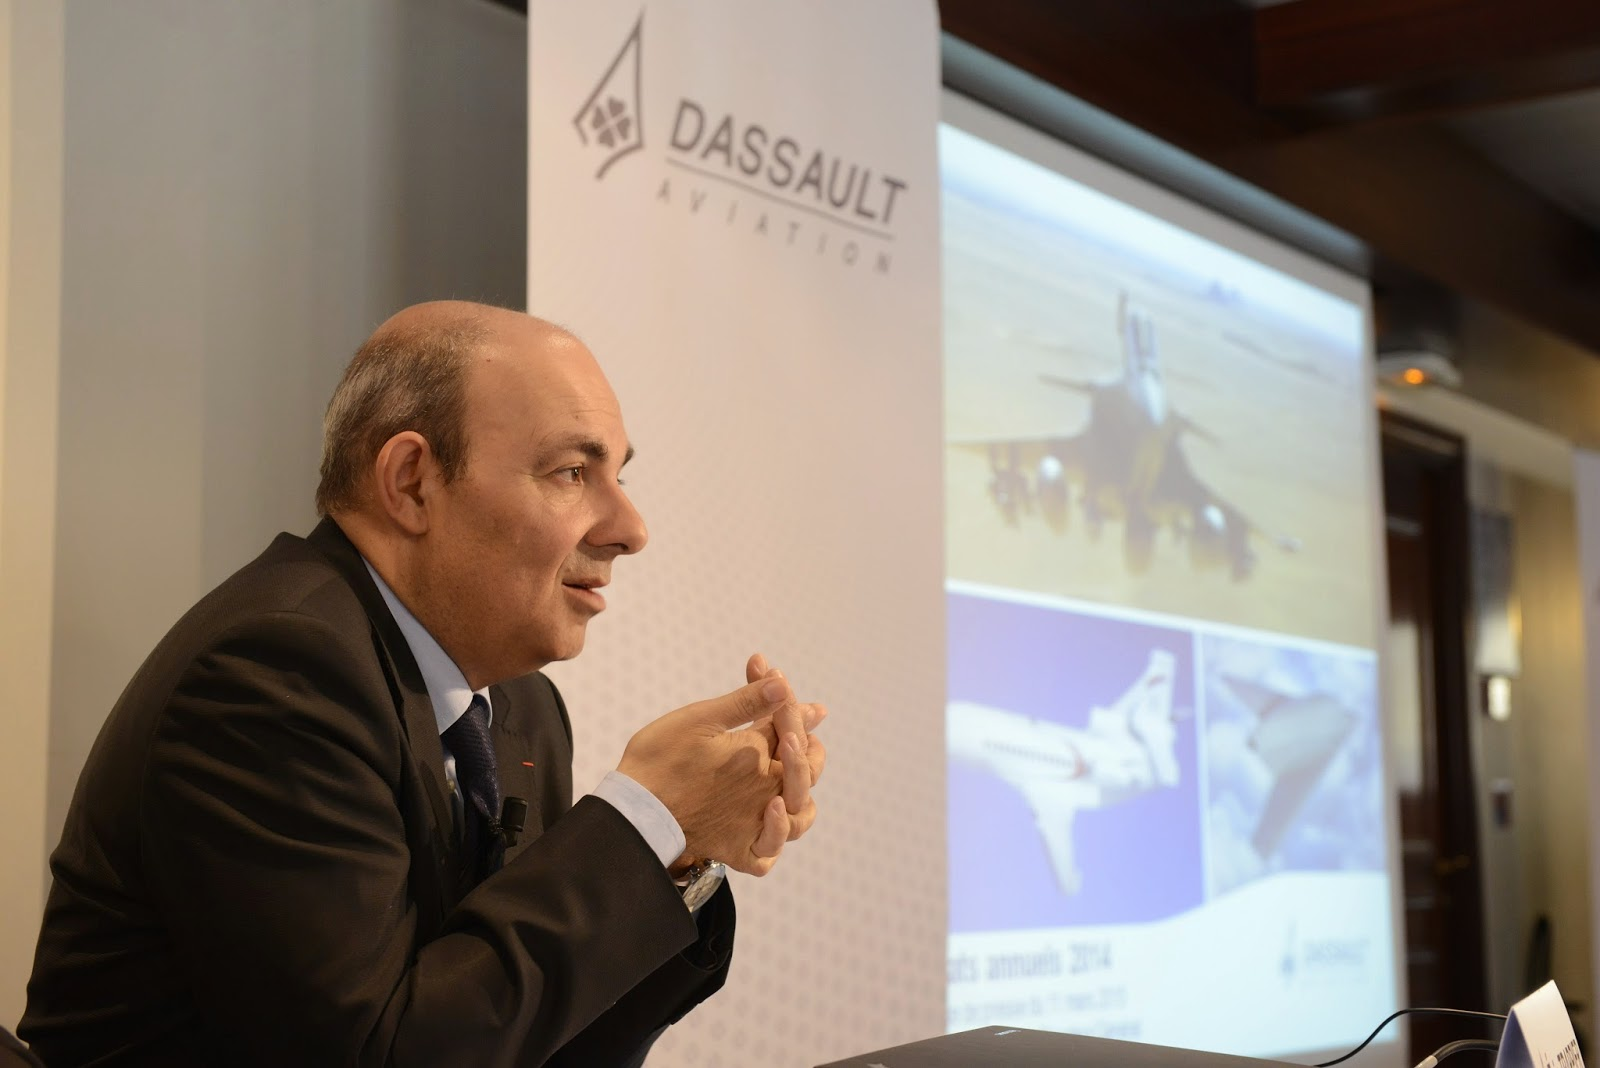 Dassault Aviation Résultats 2014 et perspectives futures